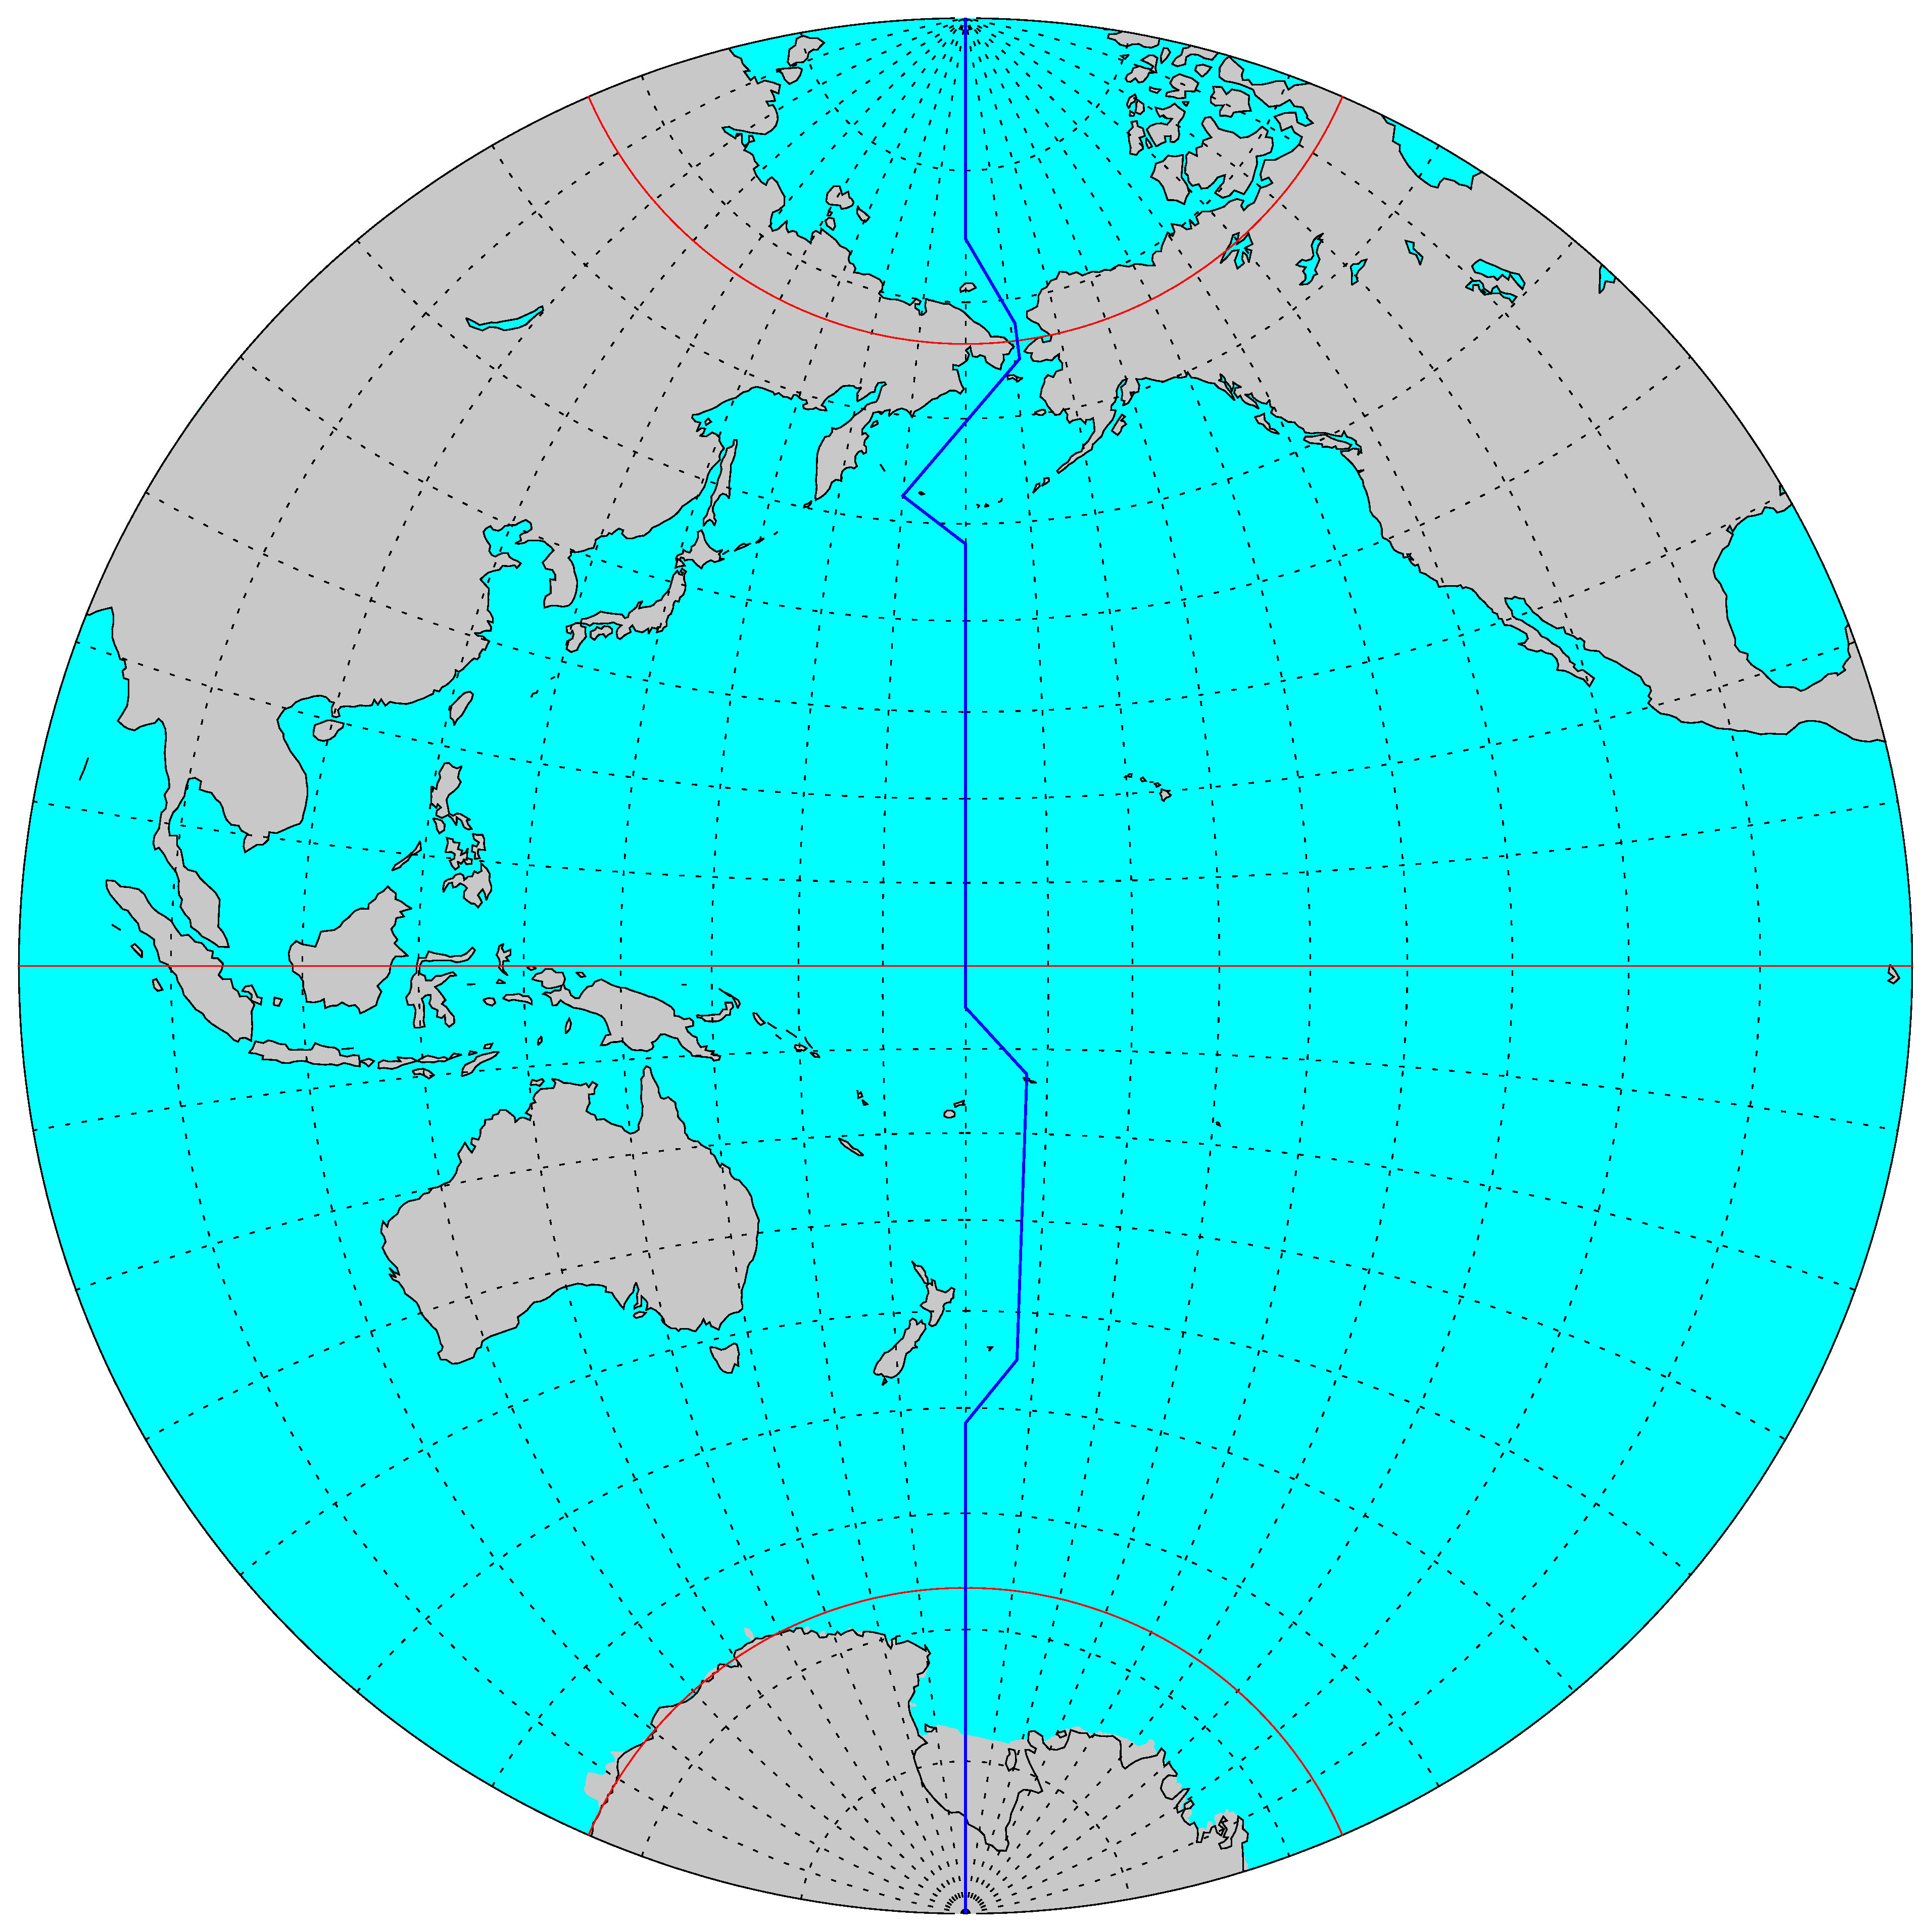 A History Of The International Date Line